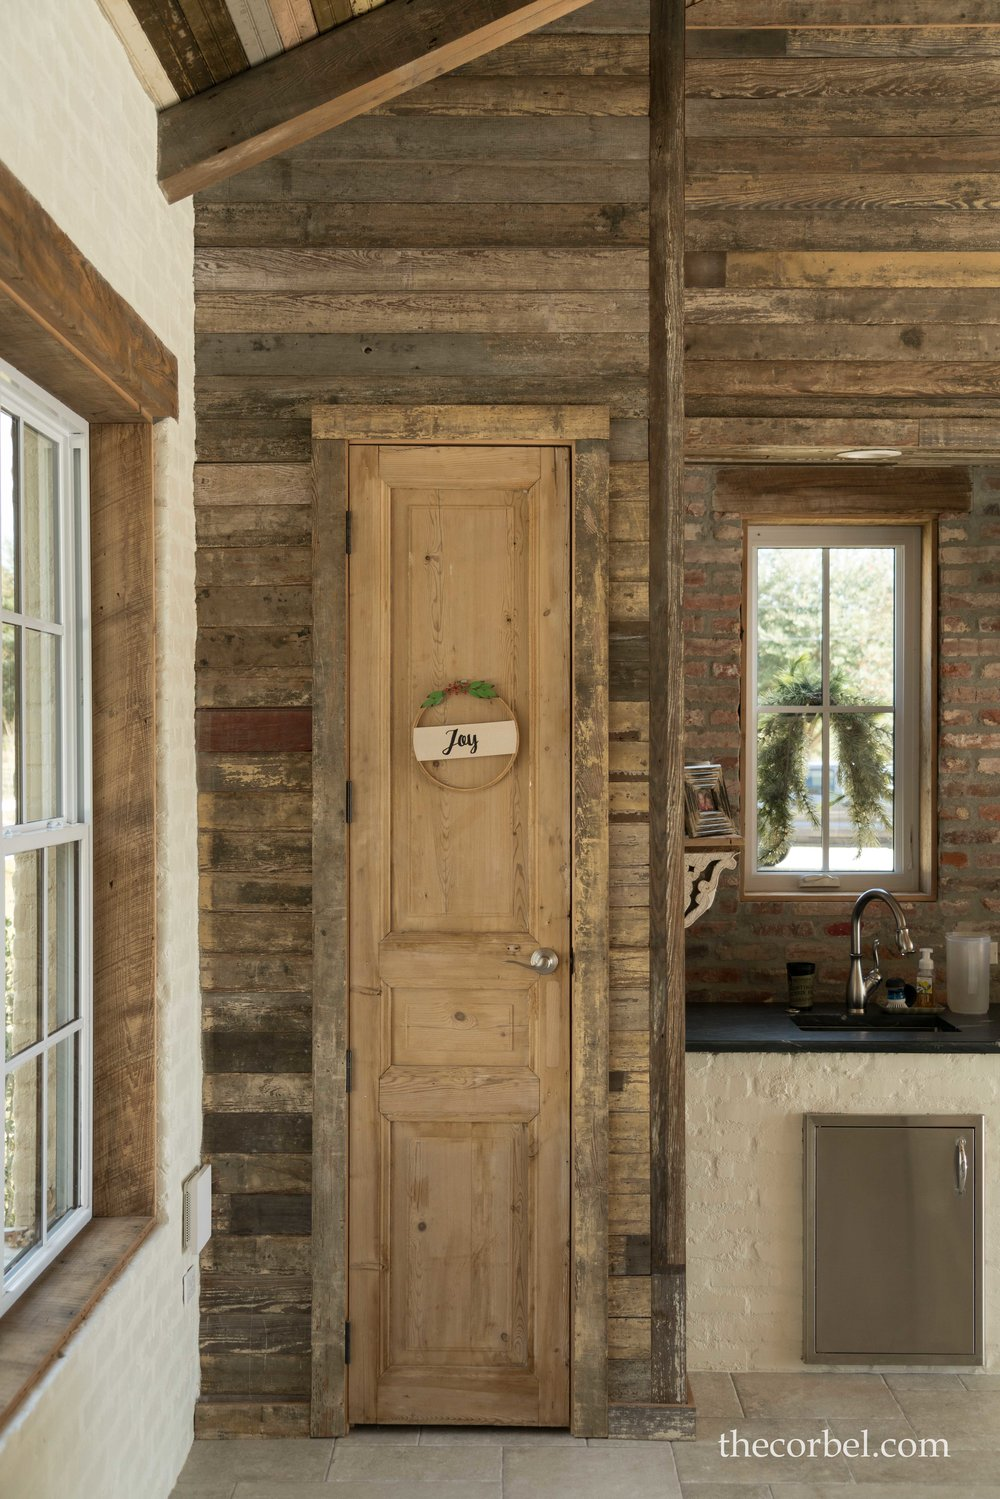 charlet bros poolhouse antique door.jpg